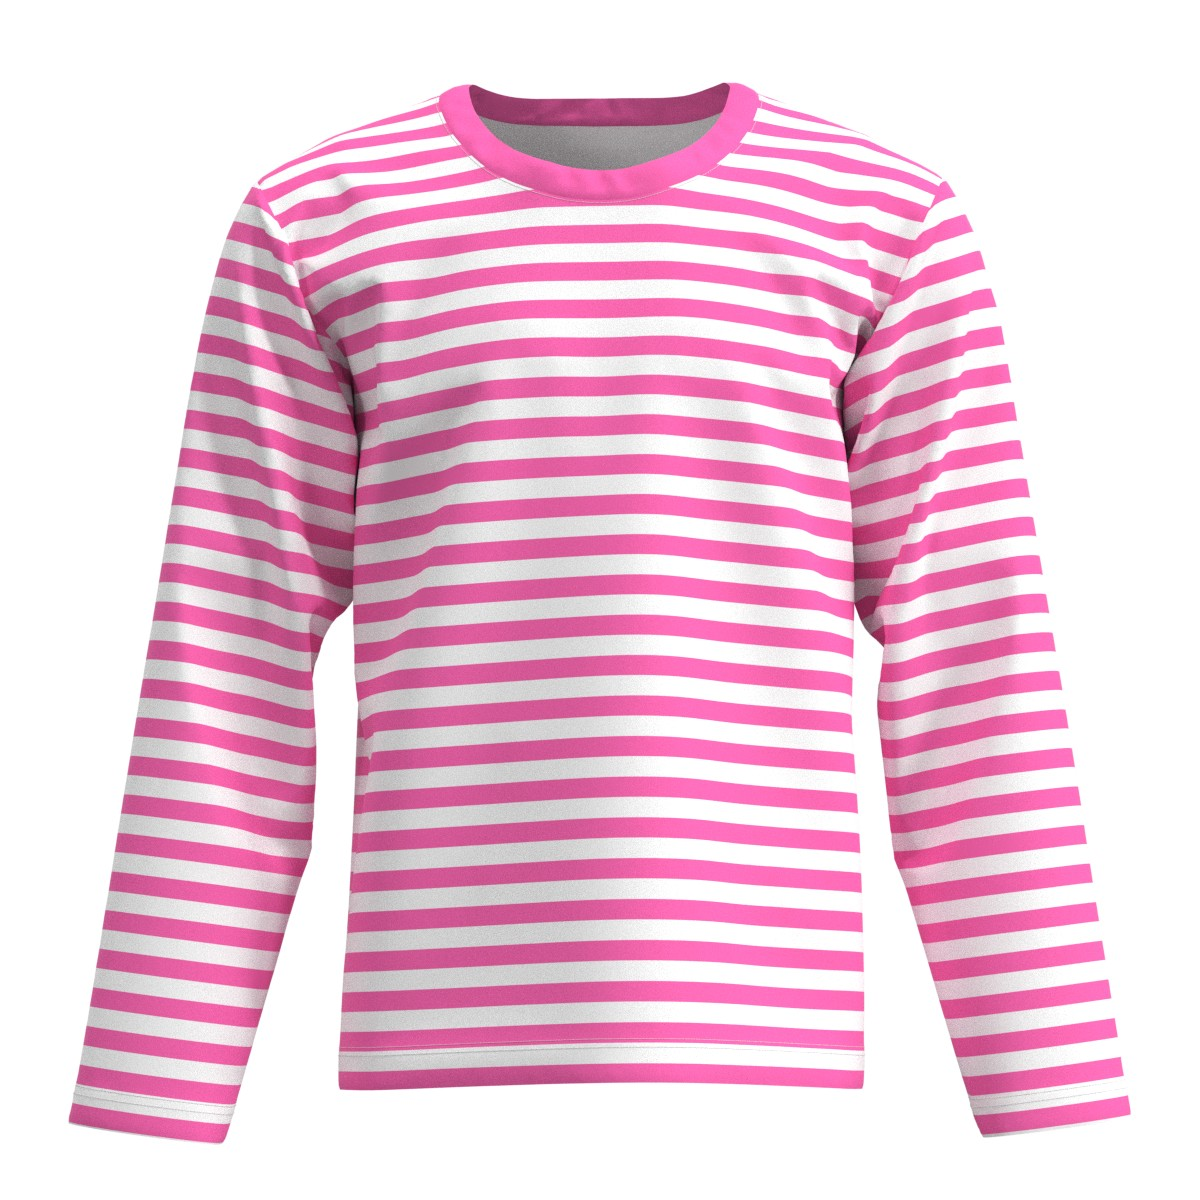 8e046b47c59 Details about EightyThreeXYZ Pink & White Horizontal Stripes Men Women Long  Sleeve T-shirt